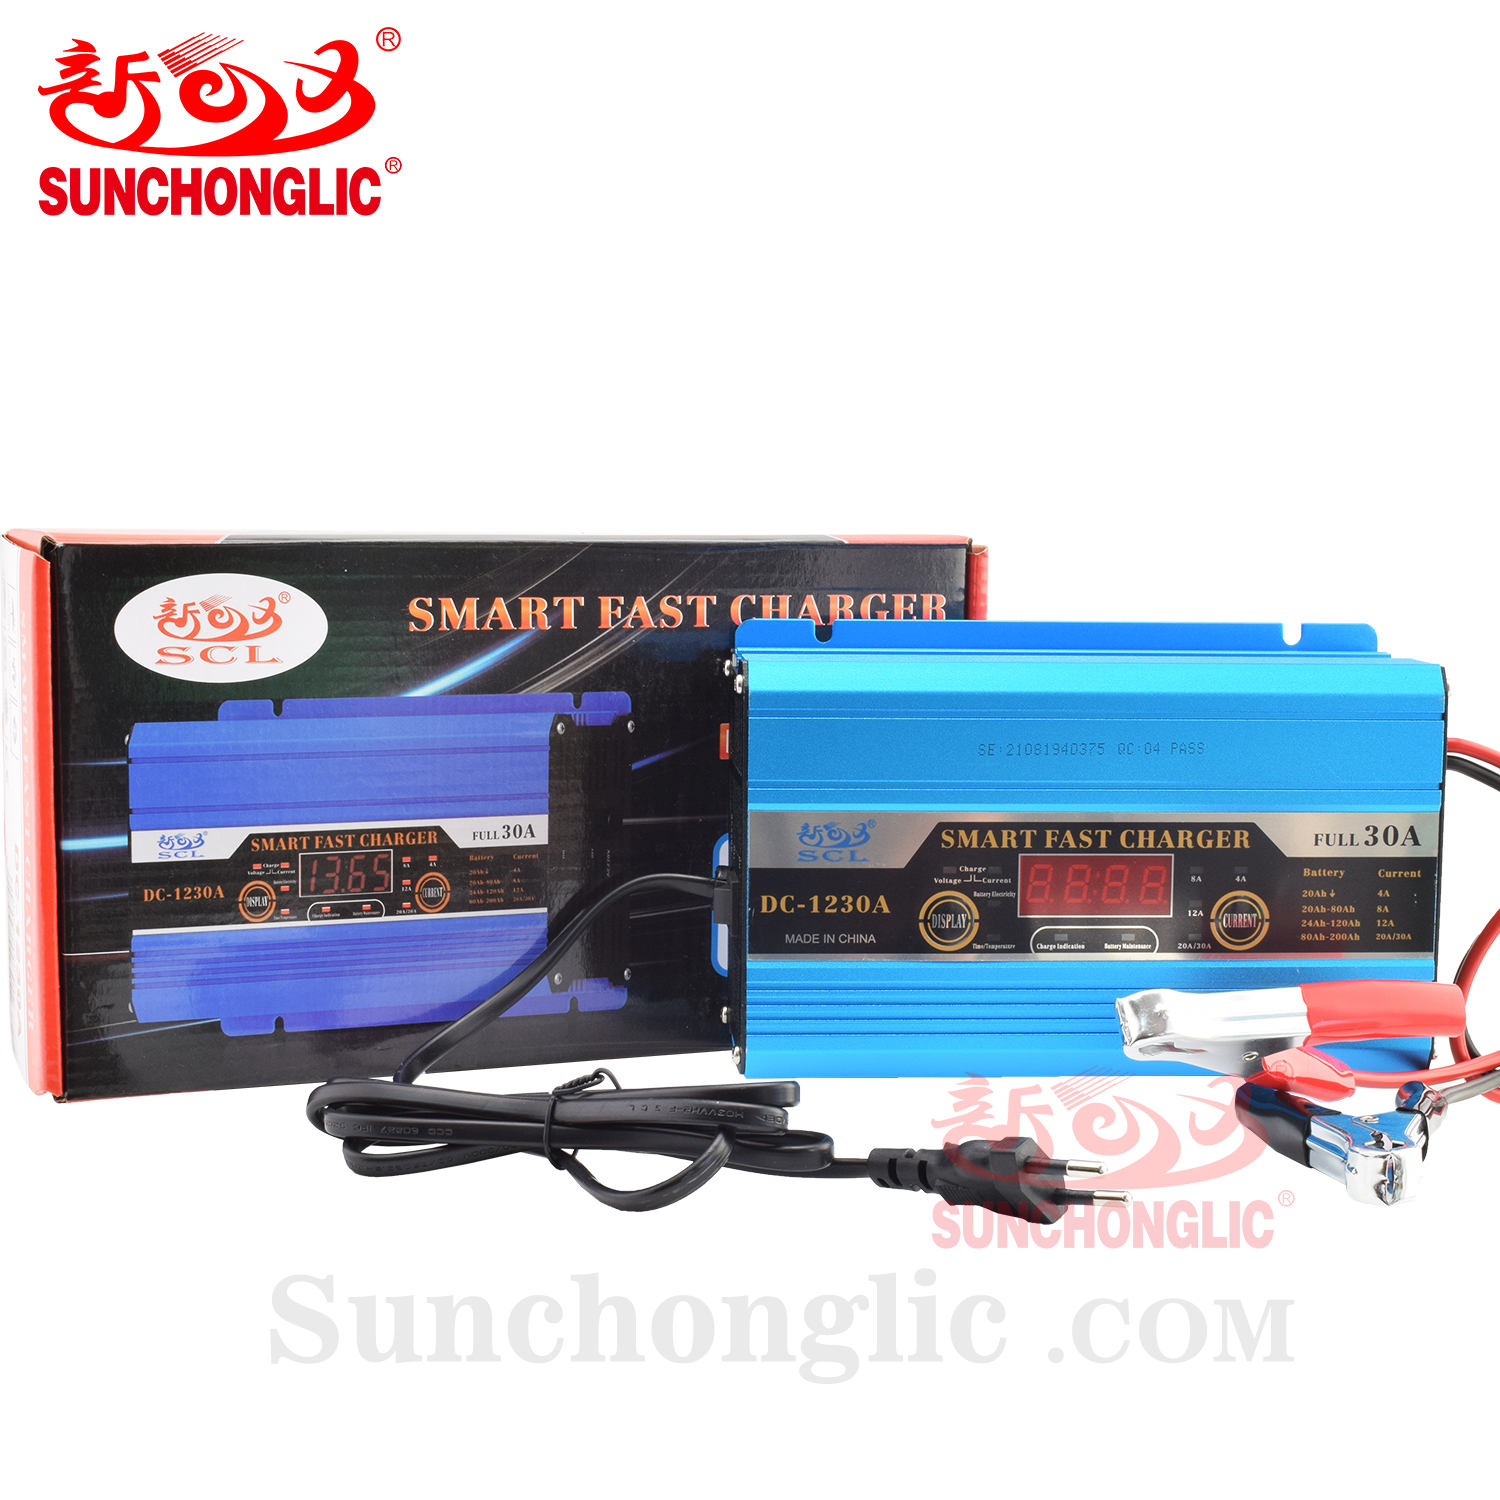 Sunchonglic 12v 30a auto car battery charger for lead acid battery